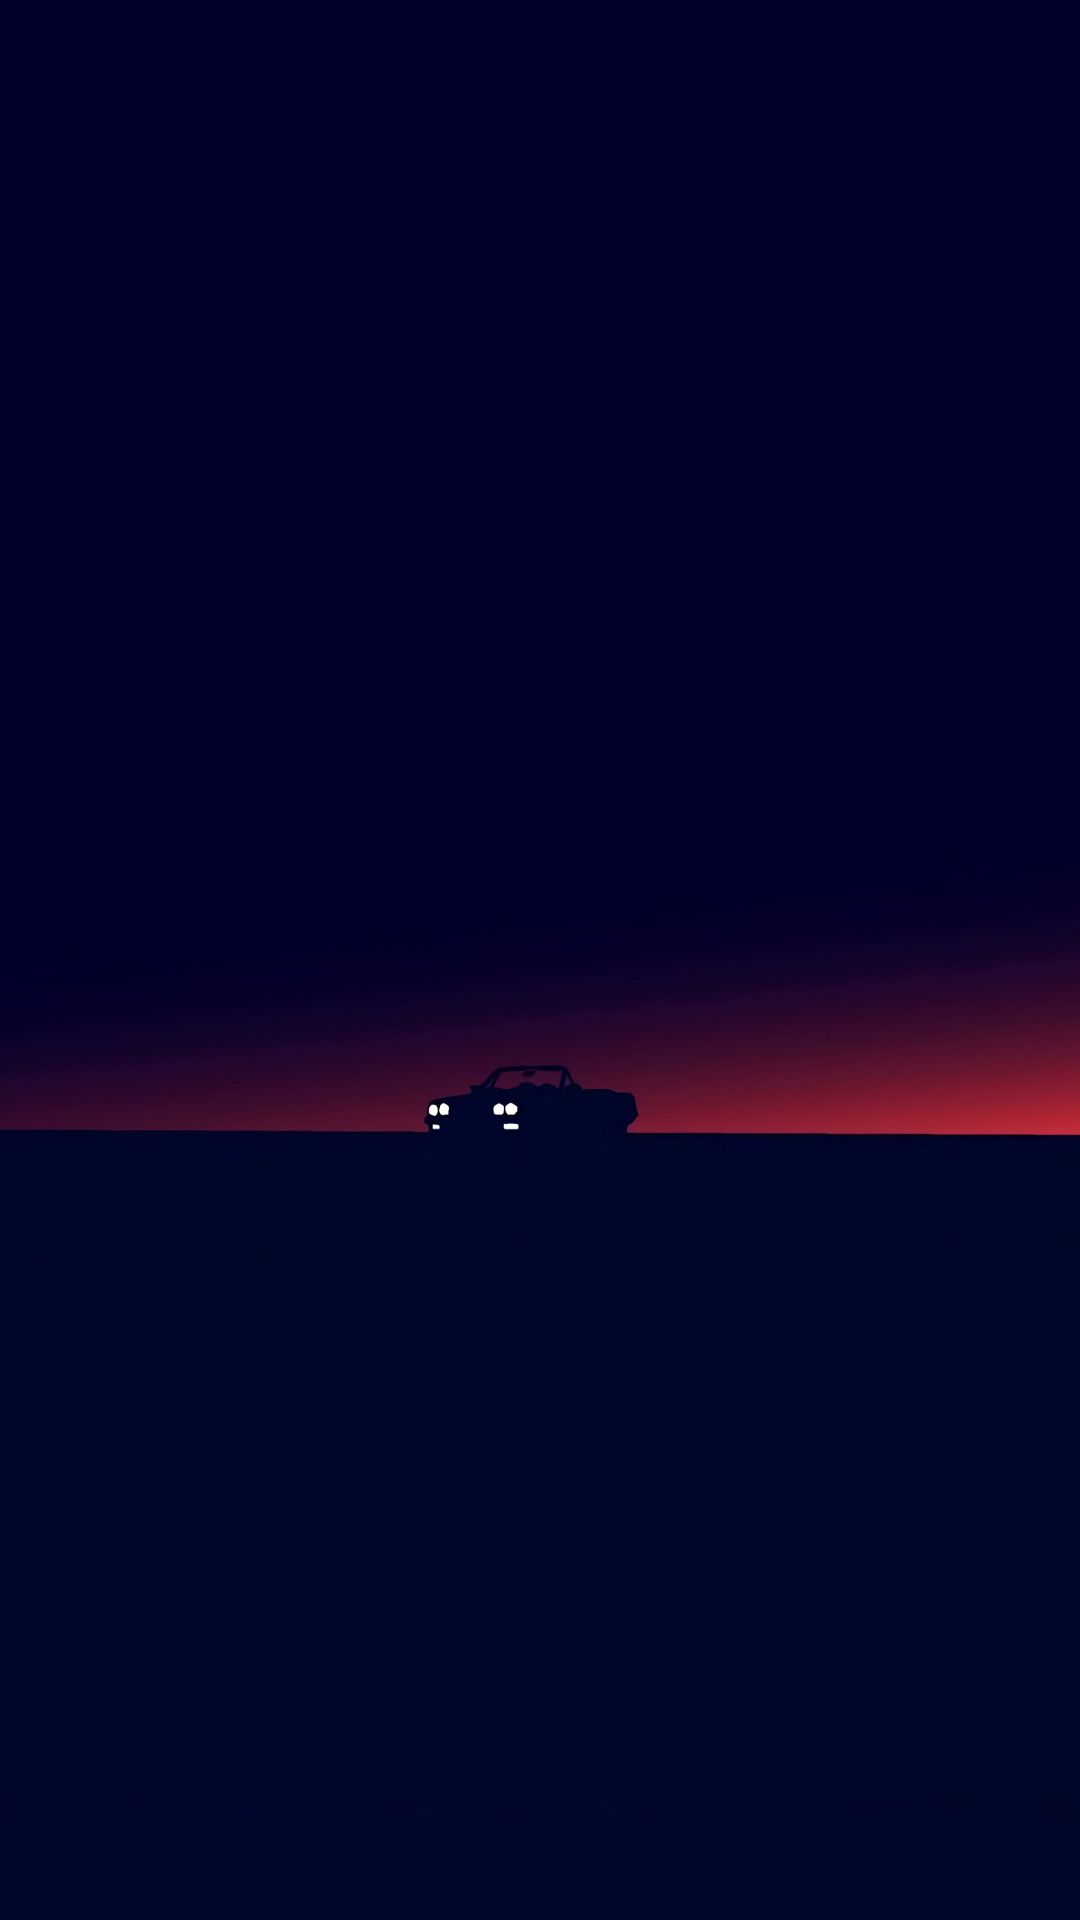 Car Silhouette Dark Twilight Minimal 1080x1920 Wallpaper Minimalist Wallpaper Minimal Wallpaper Art Wallpaper